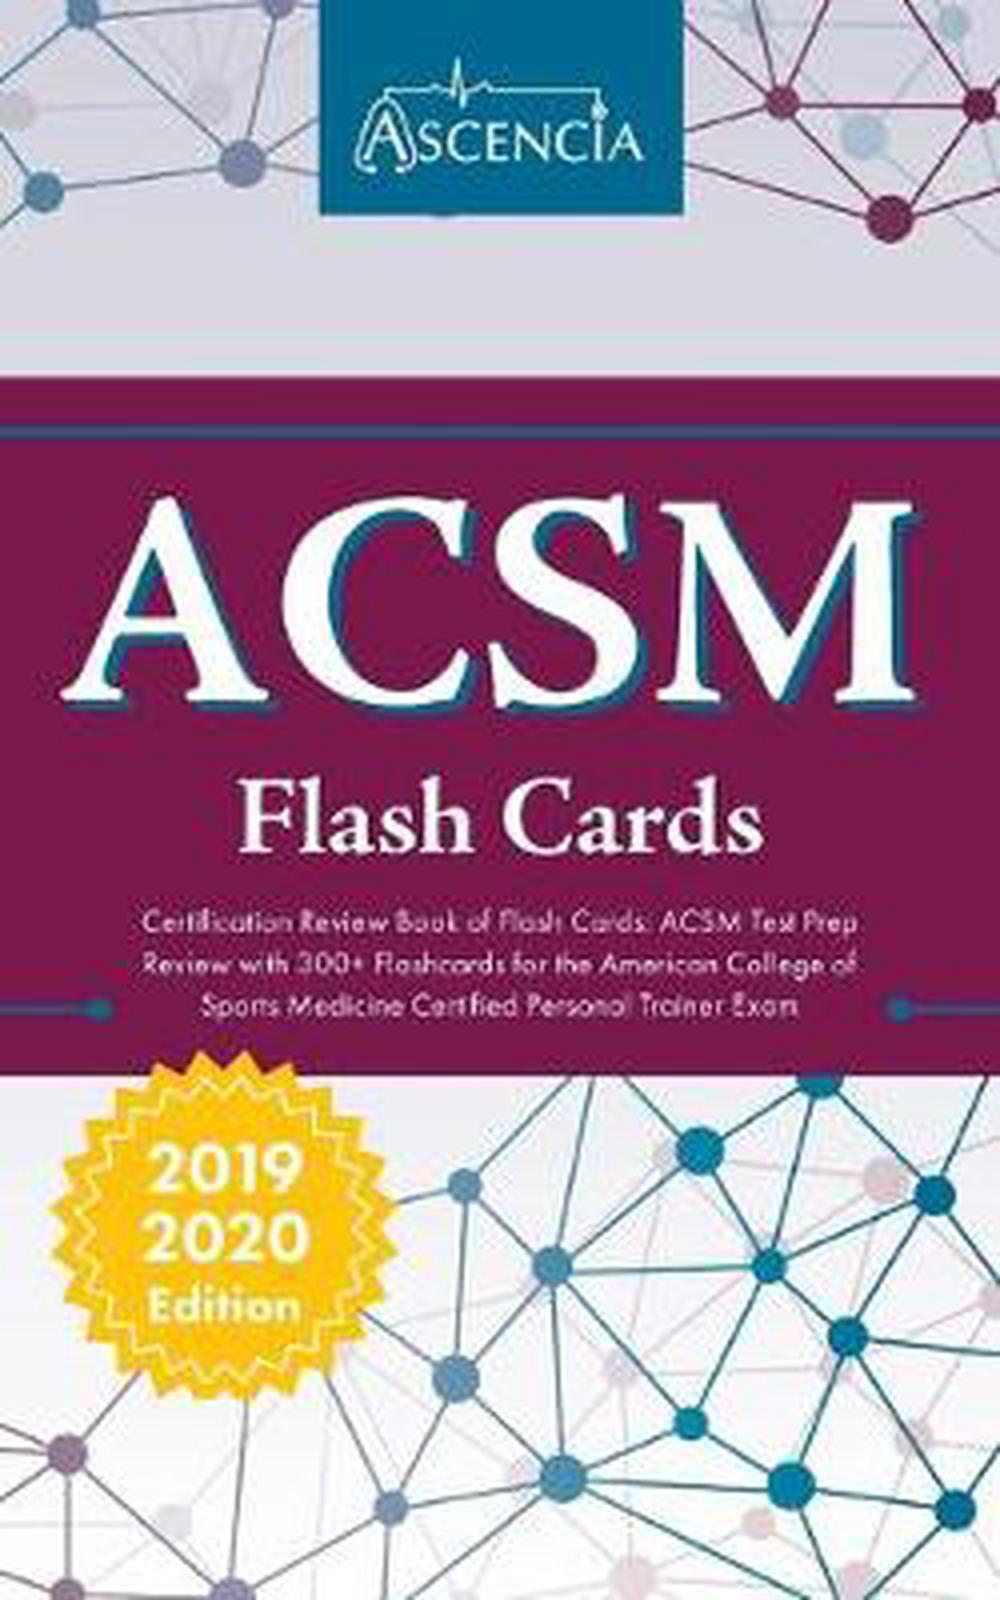 Acsm Certification Review Book Of Flash Cards Acsm Test Prep Review